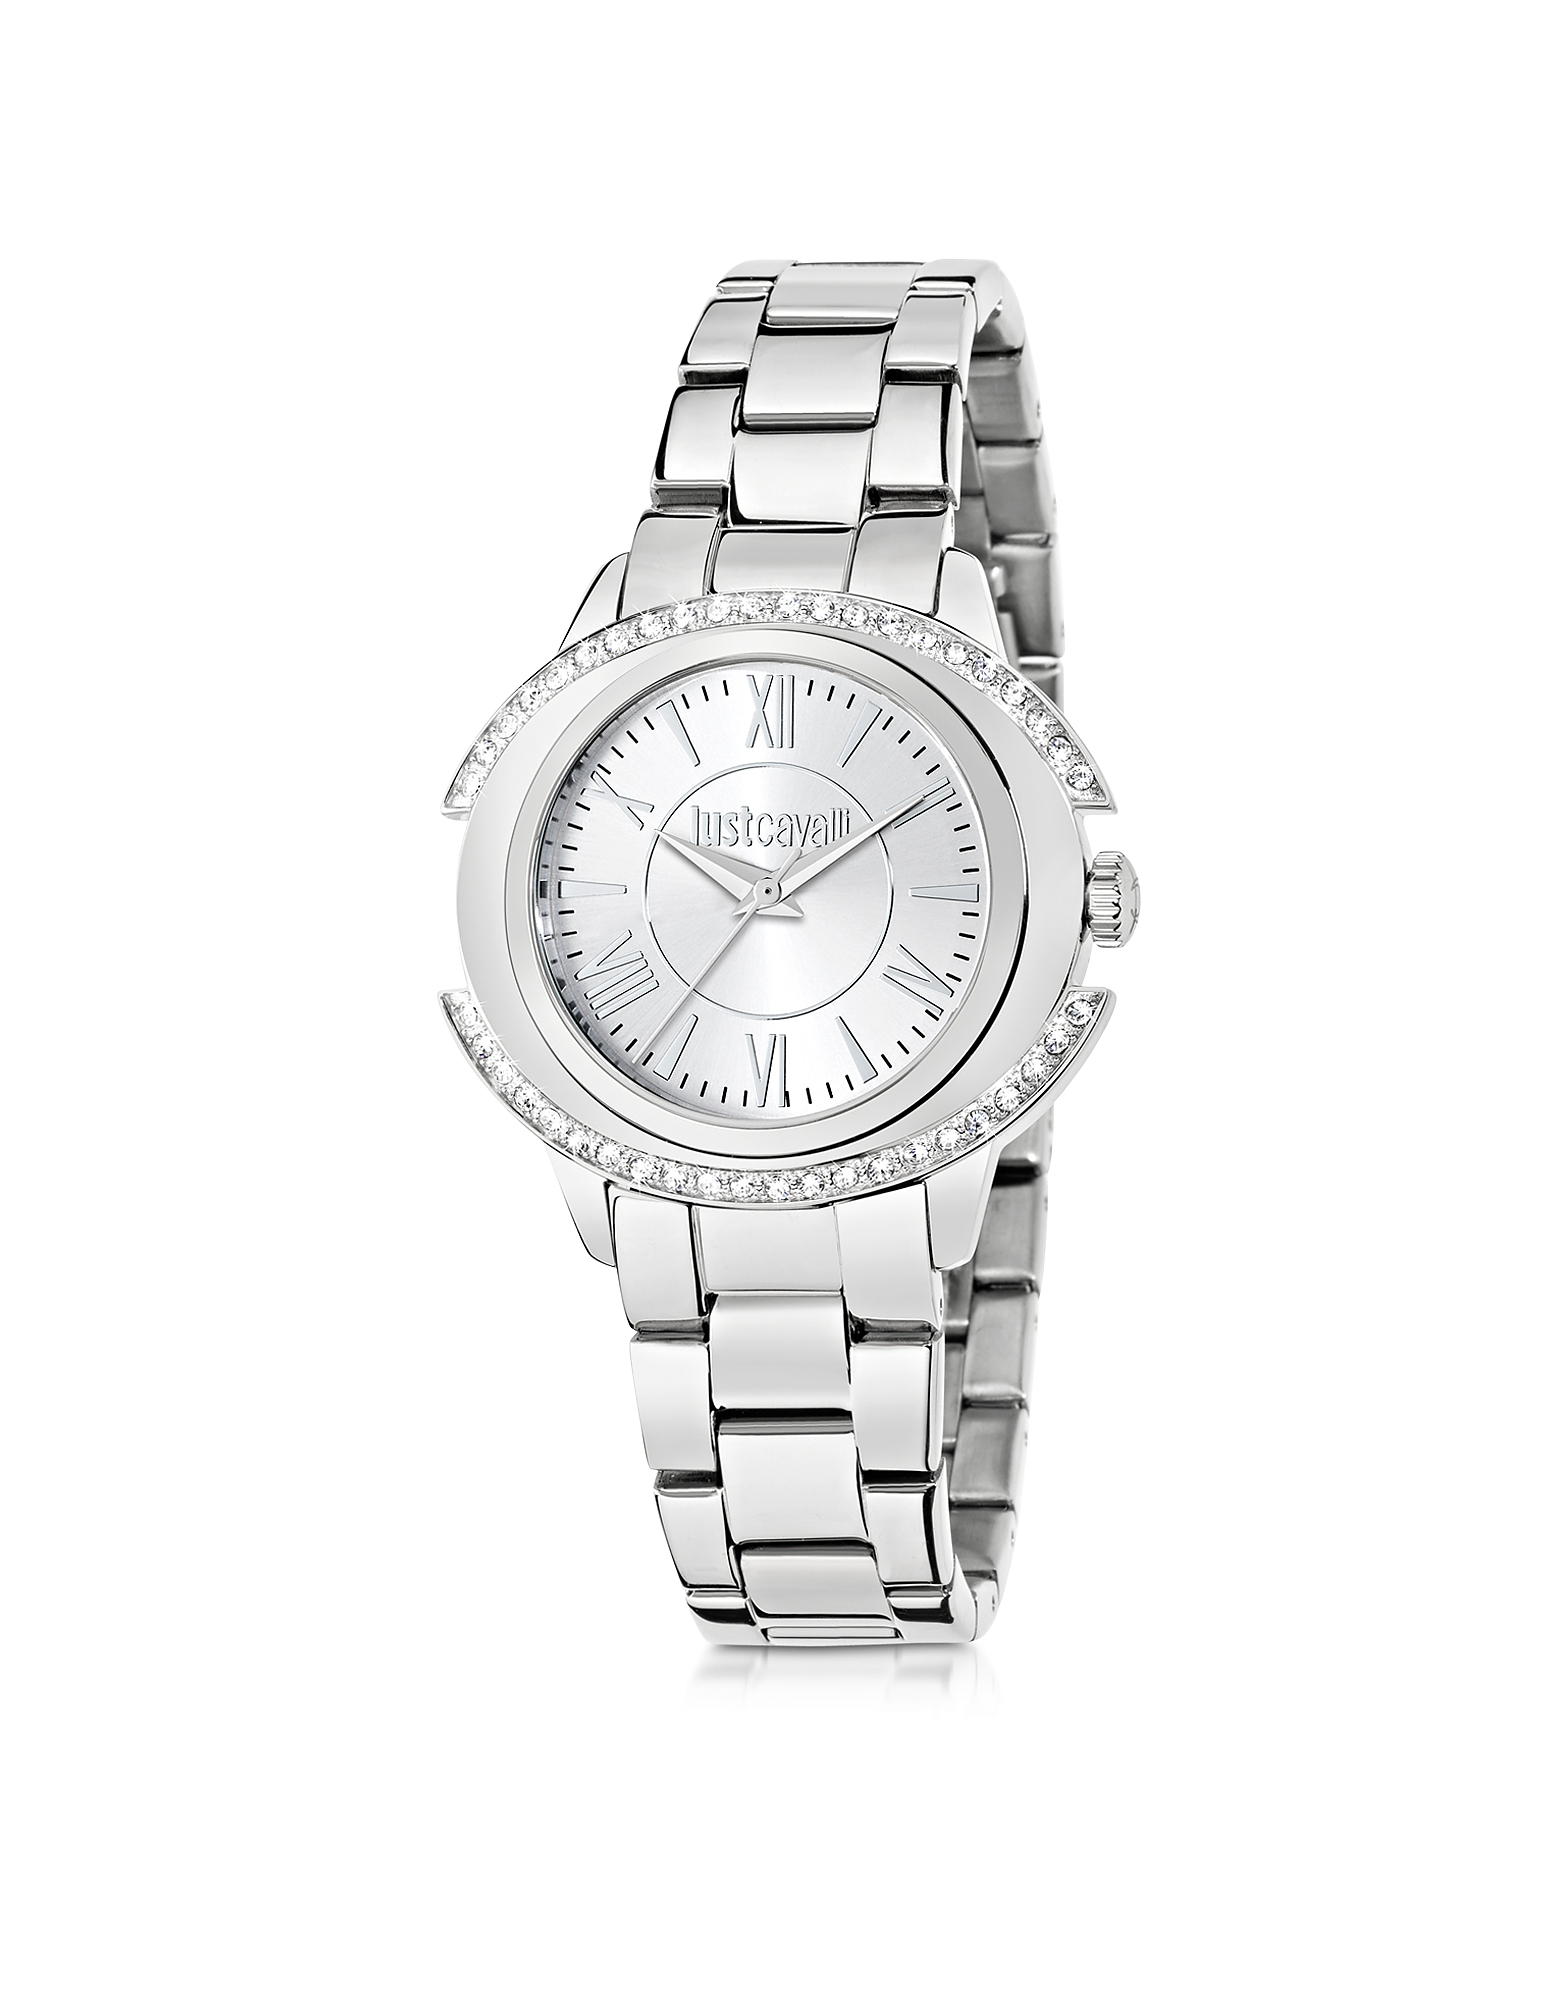 Image of Just Cavalli Designer Women's Watches, Just Decor Silver Tone Stainless Steel Women's Watch